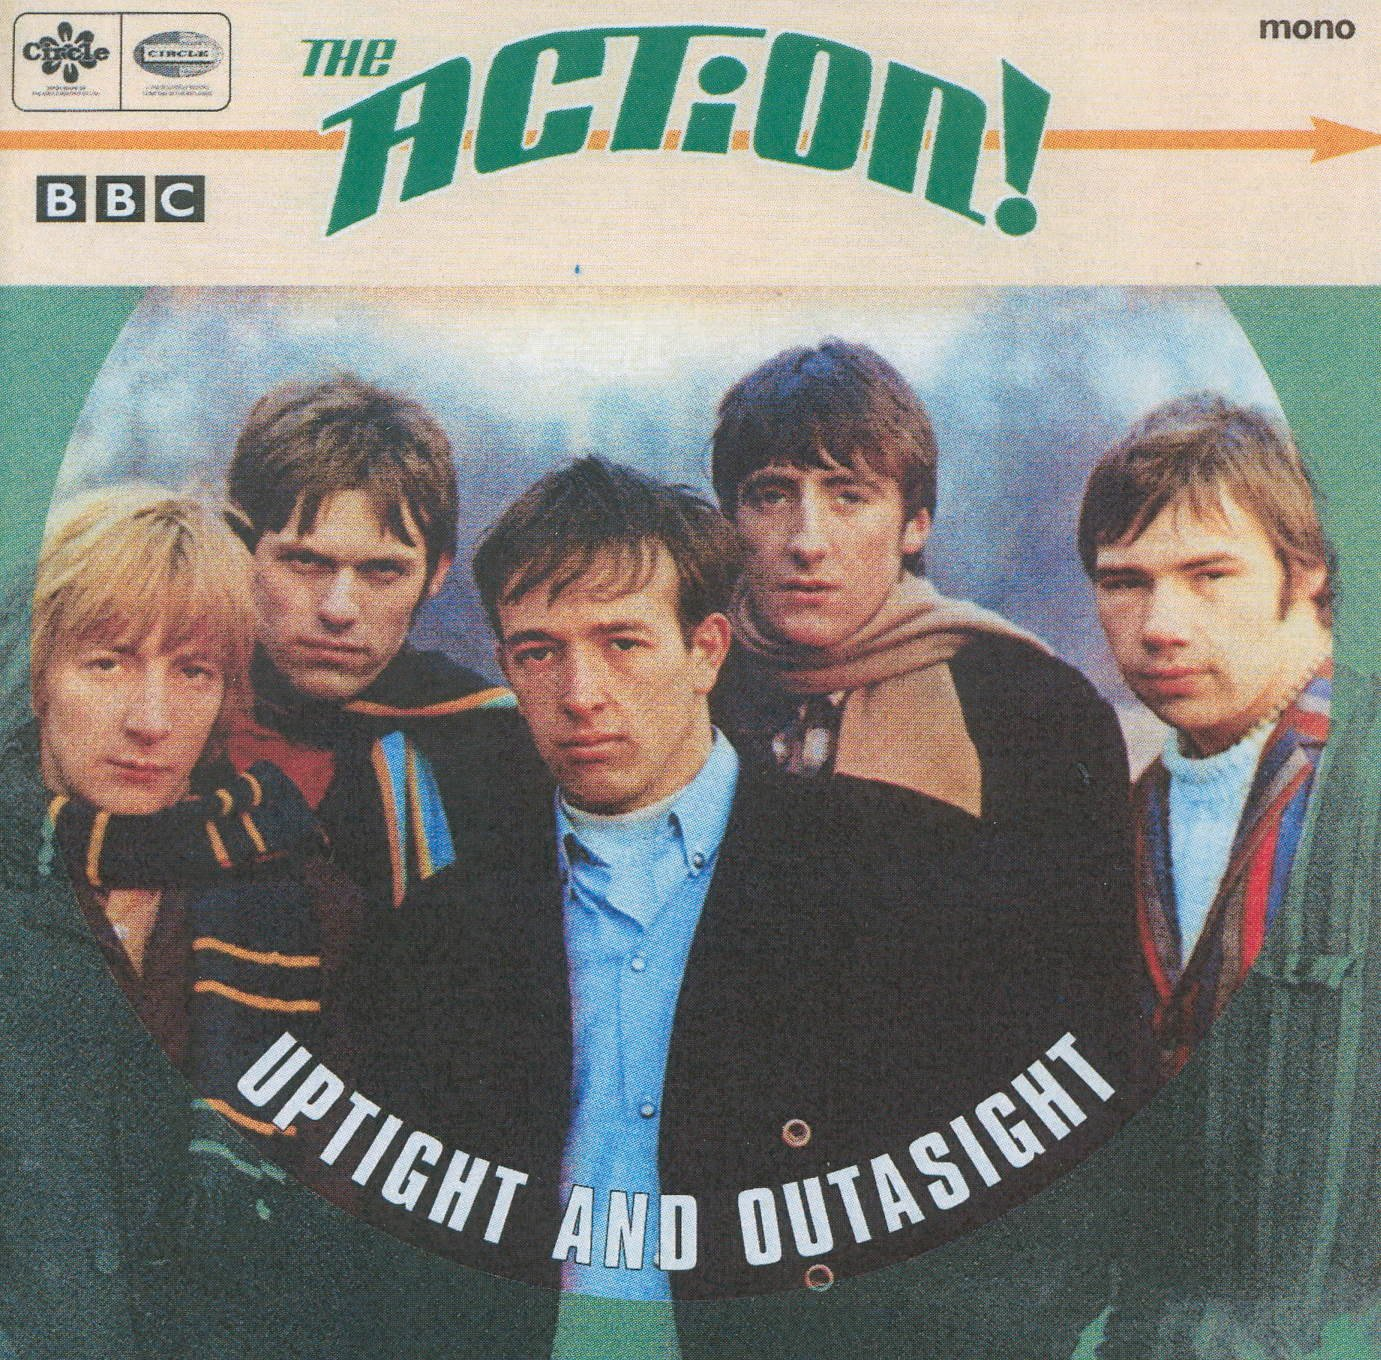 The Action album Uptight and Outasight